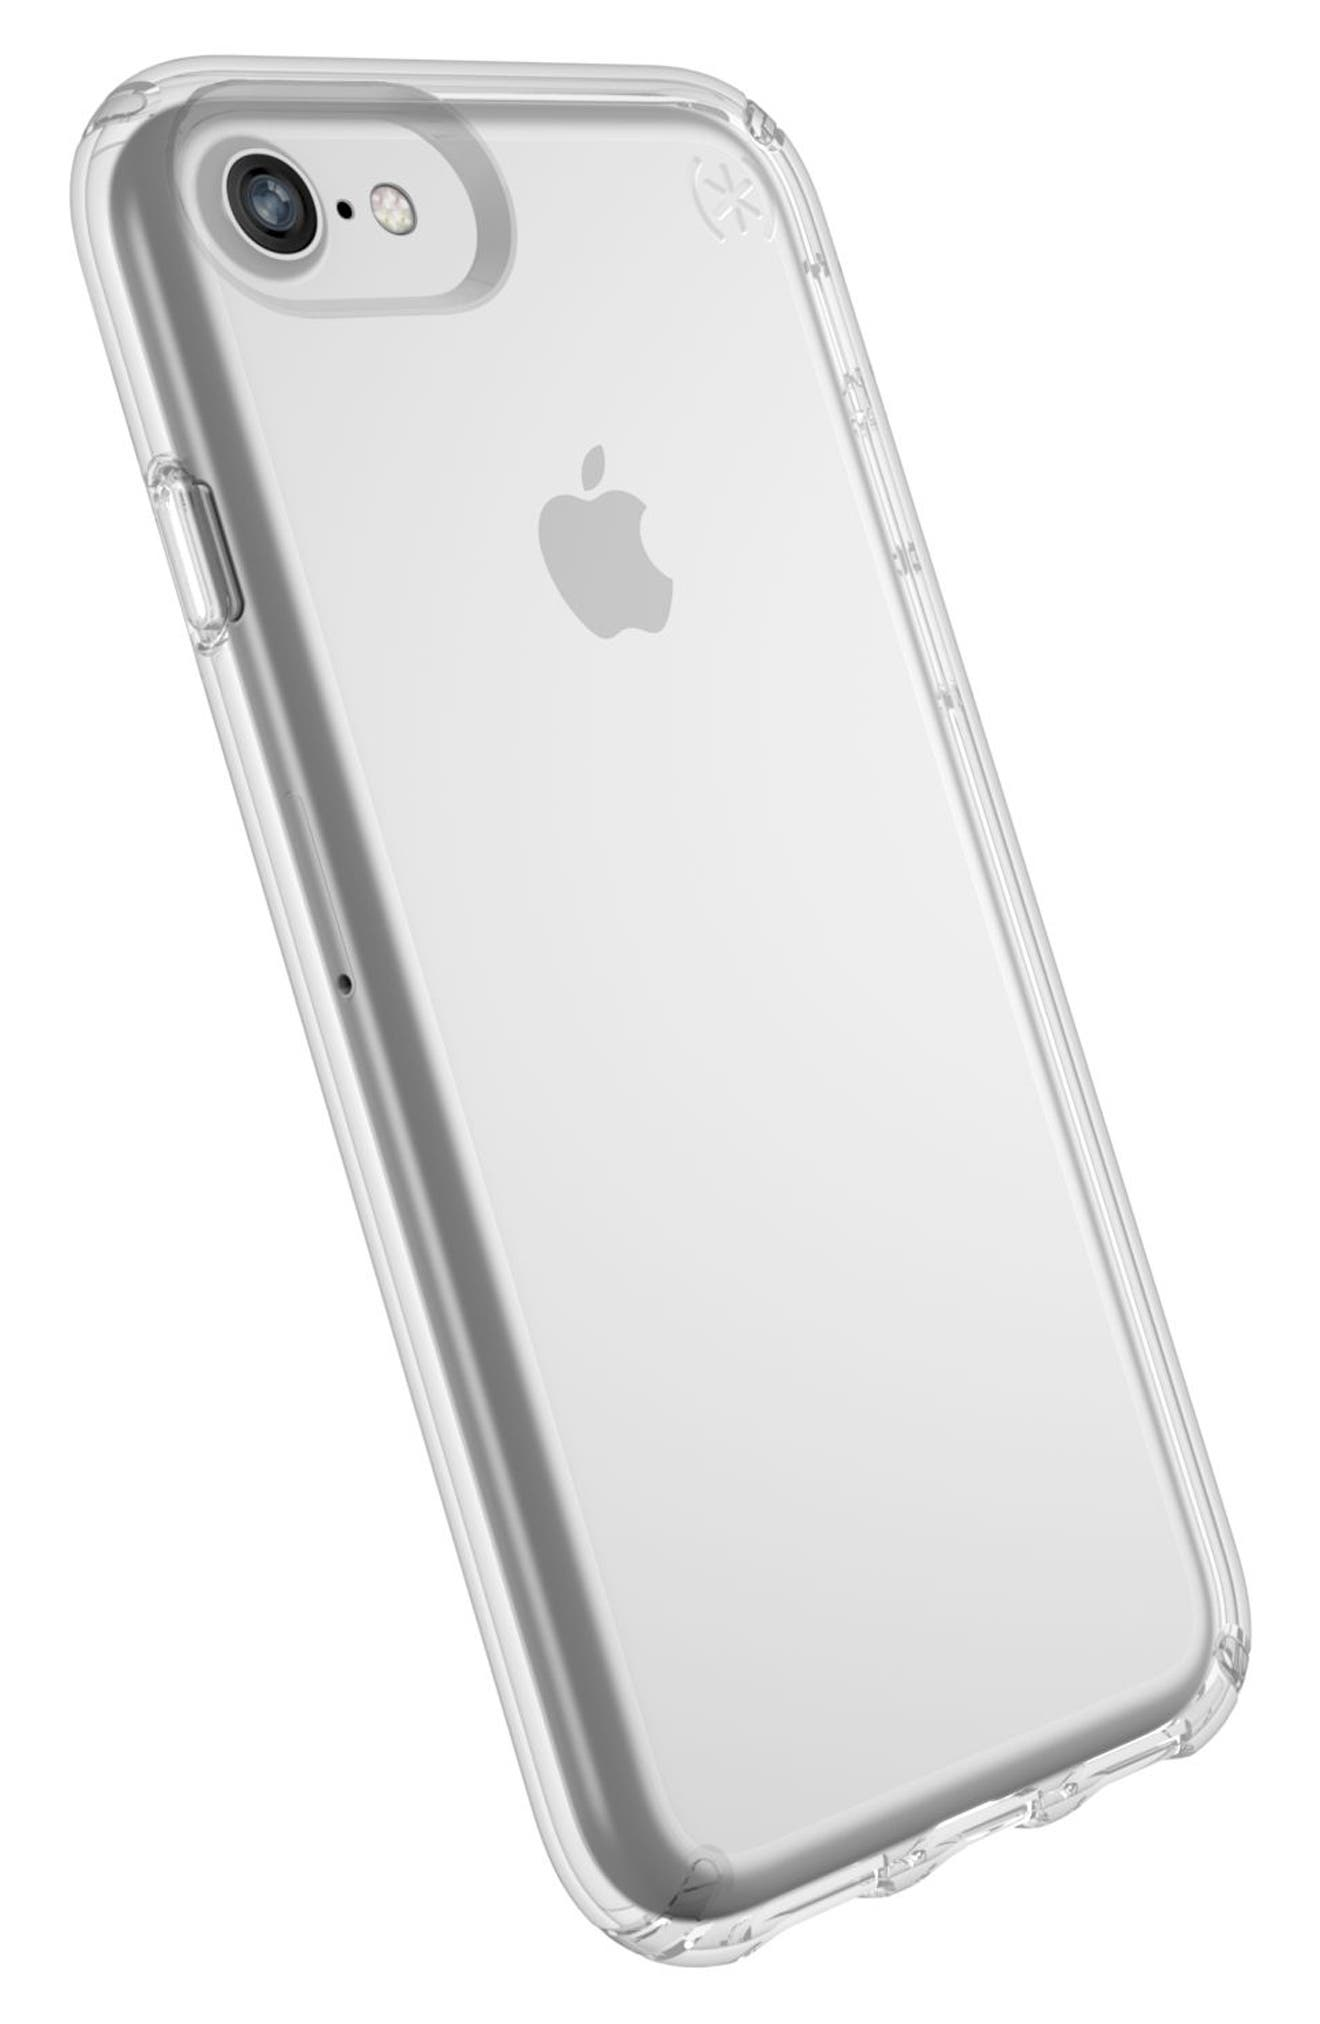 Transparent iPhone 6/6s/7/8 Case,                             Alternate thumbnail 8, color,                             CLEAR/ CLEAR